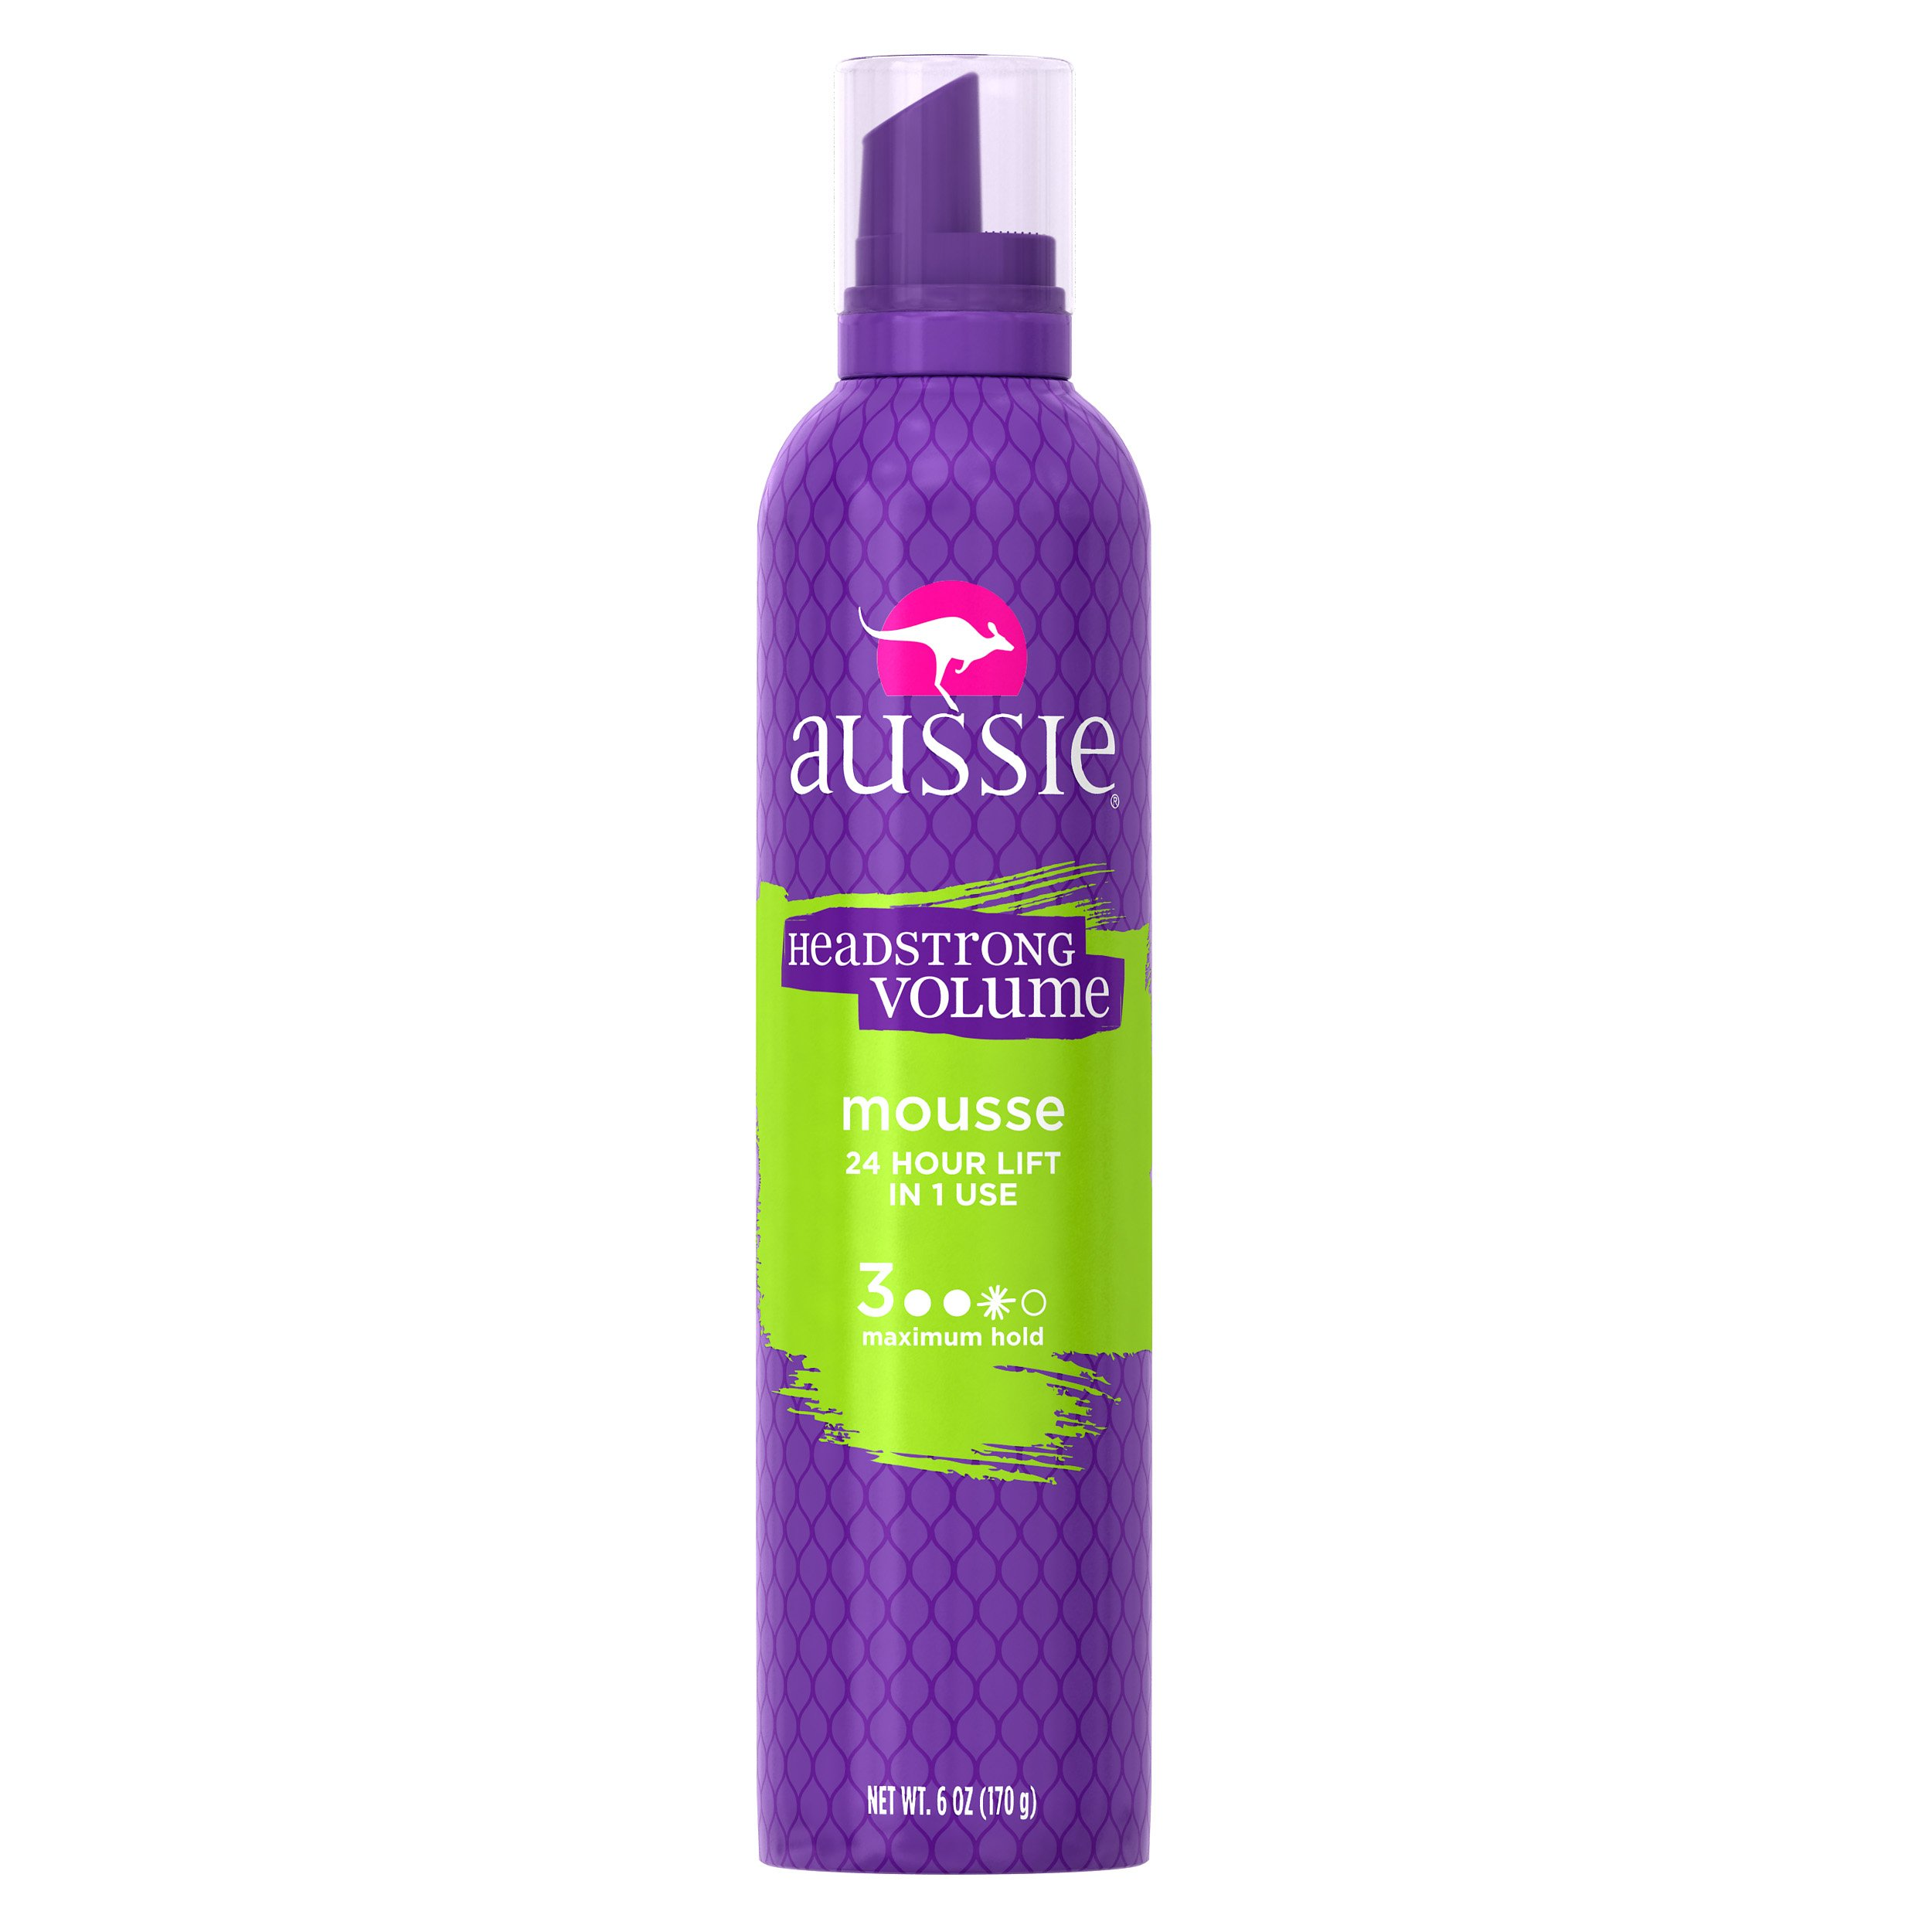 Aussie Headstrong Volume Mousse Maximum Hold 6 oz (Pack of 12)